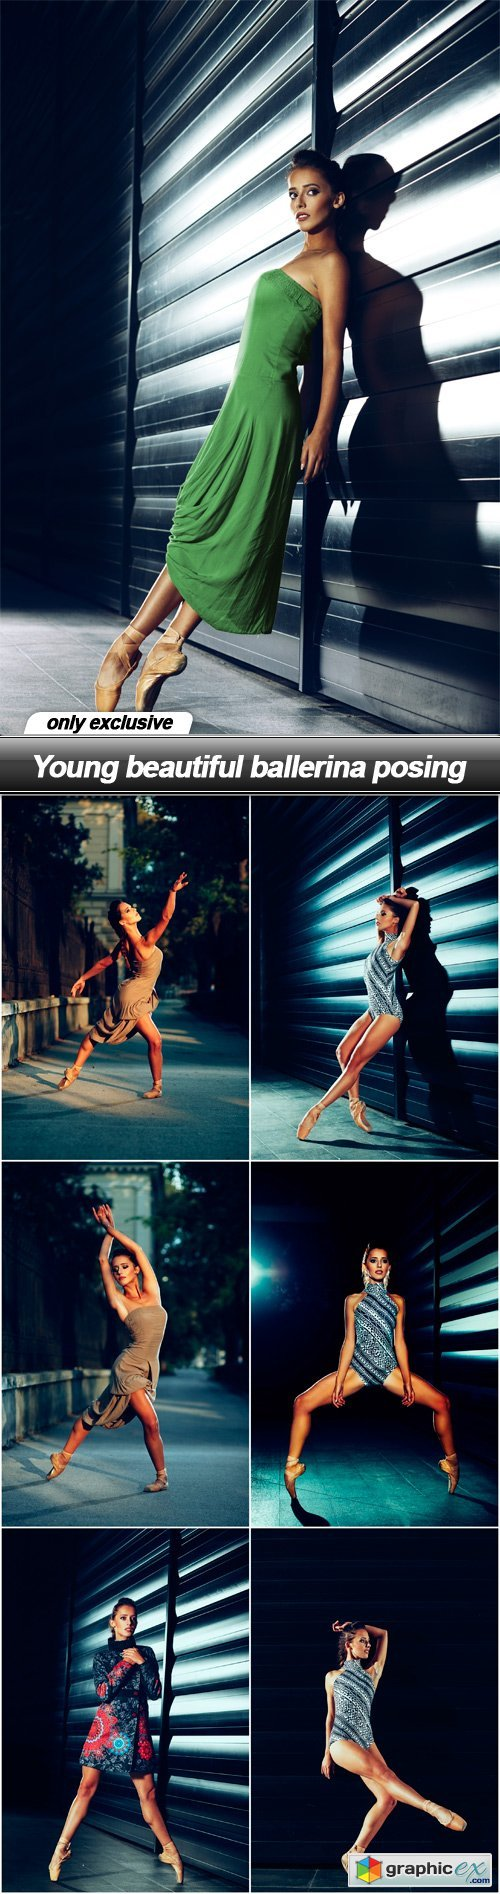 Young beautiful ballerina posing - 7 UHQ JPEG